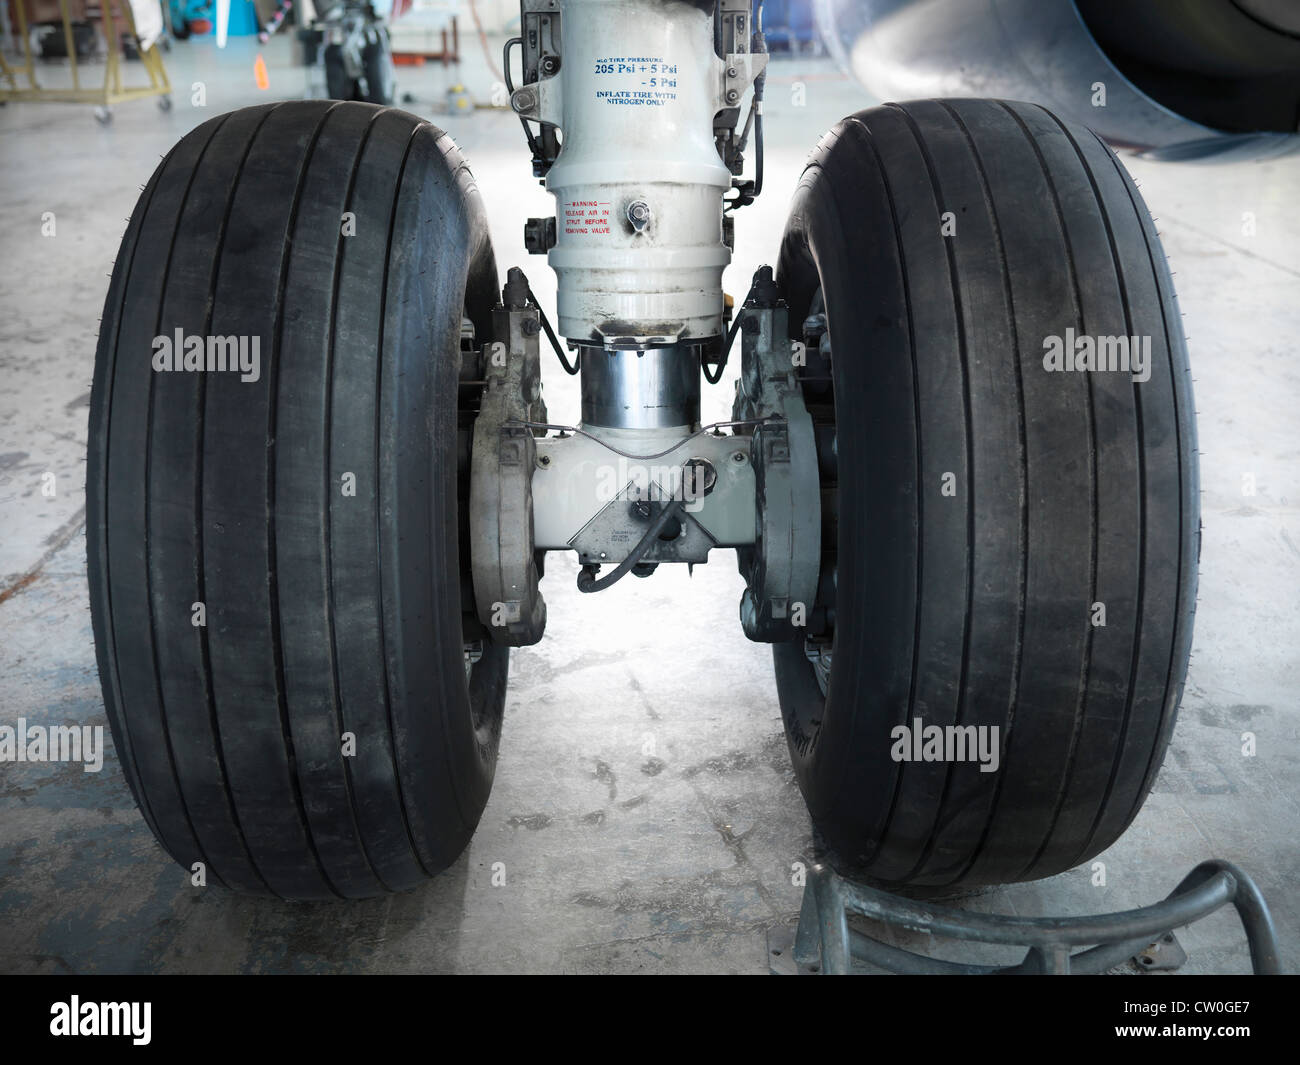 Close up of airplane wheels in hangar Photo Stock